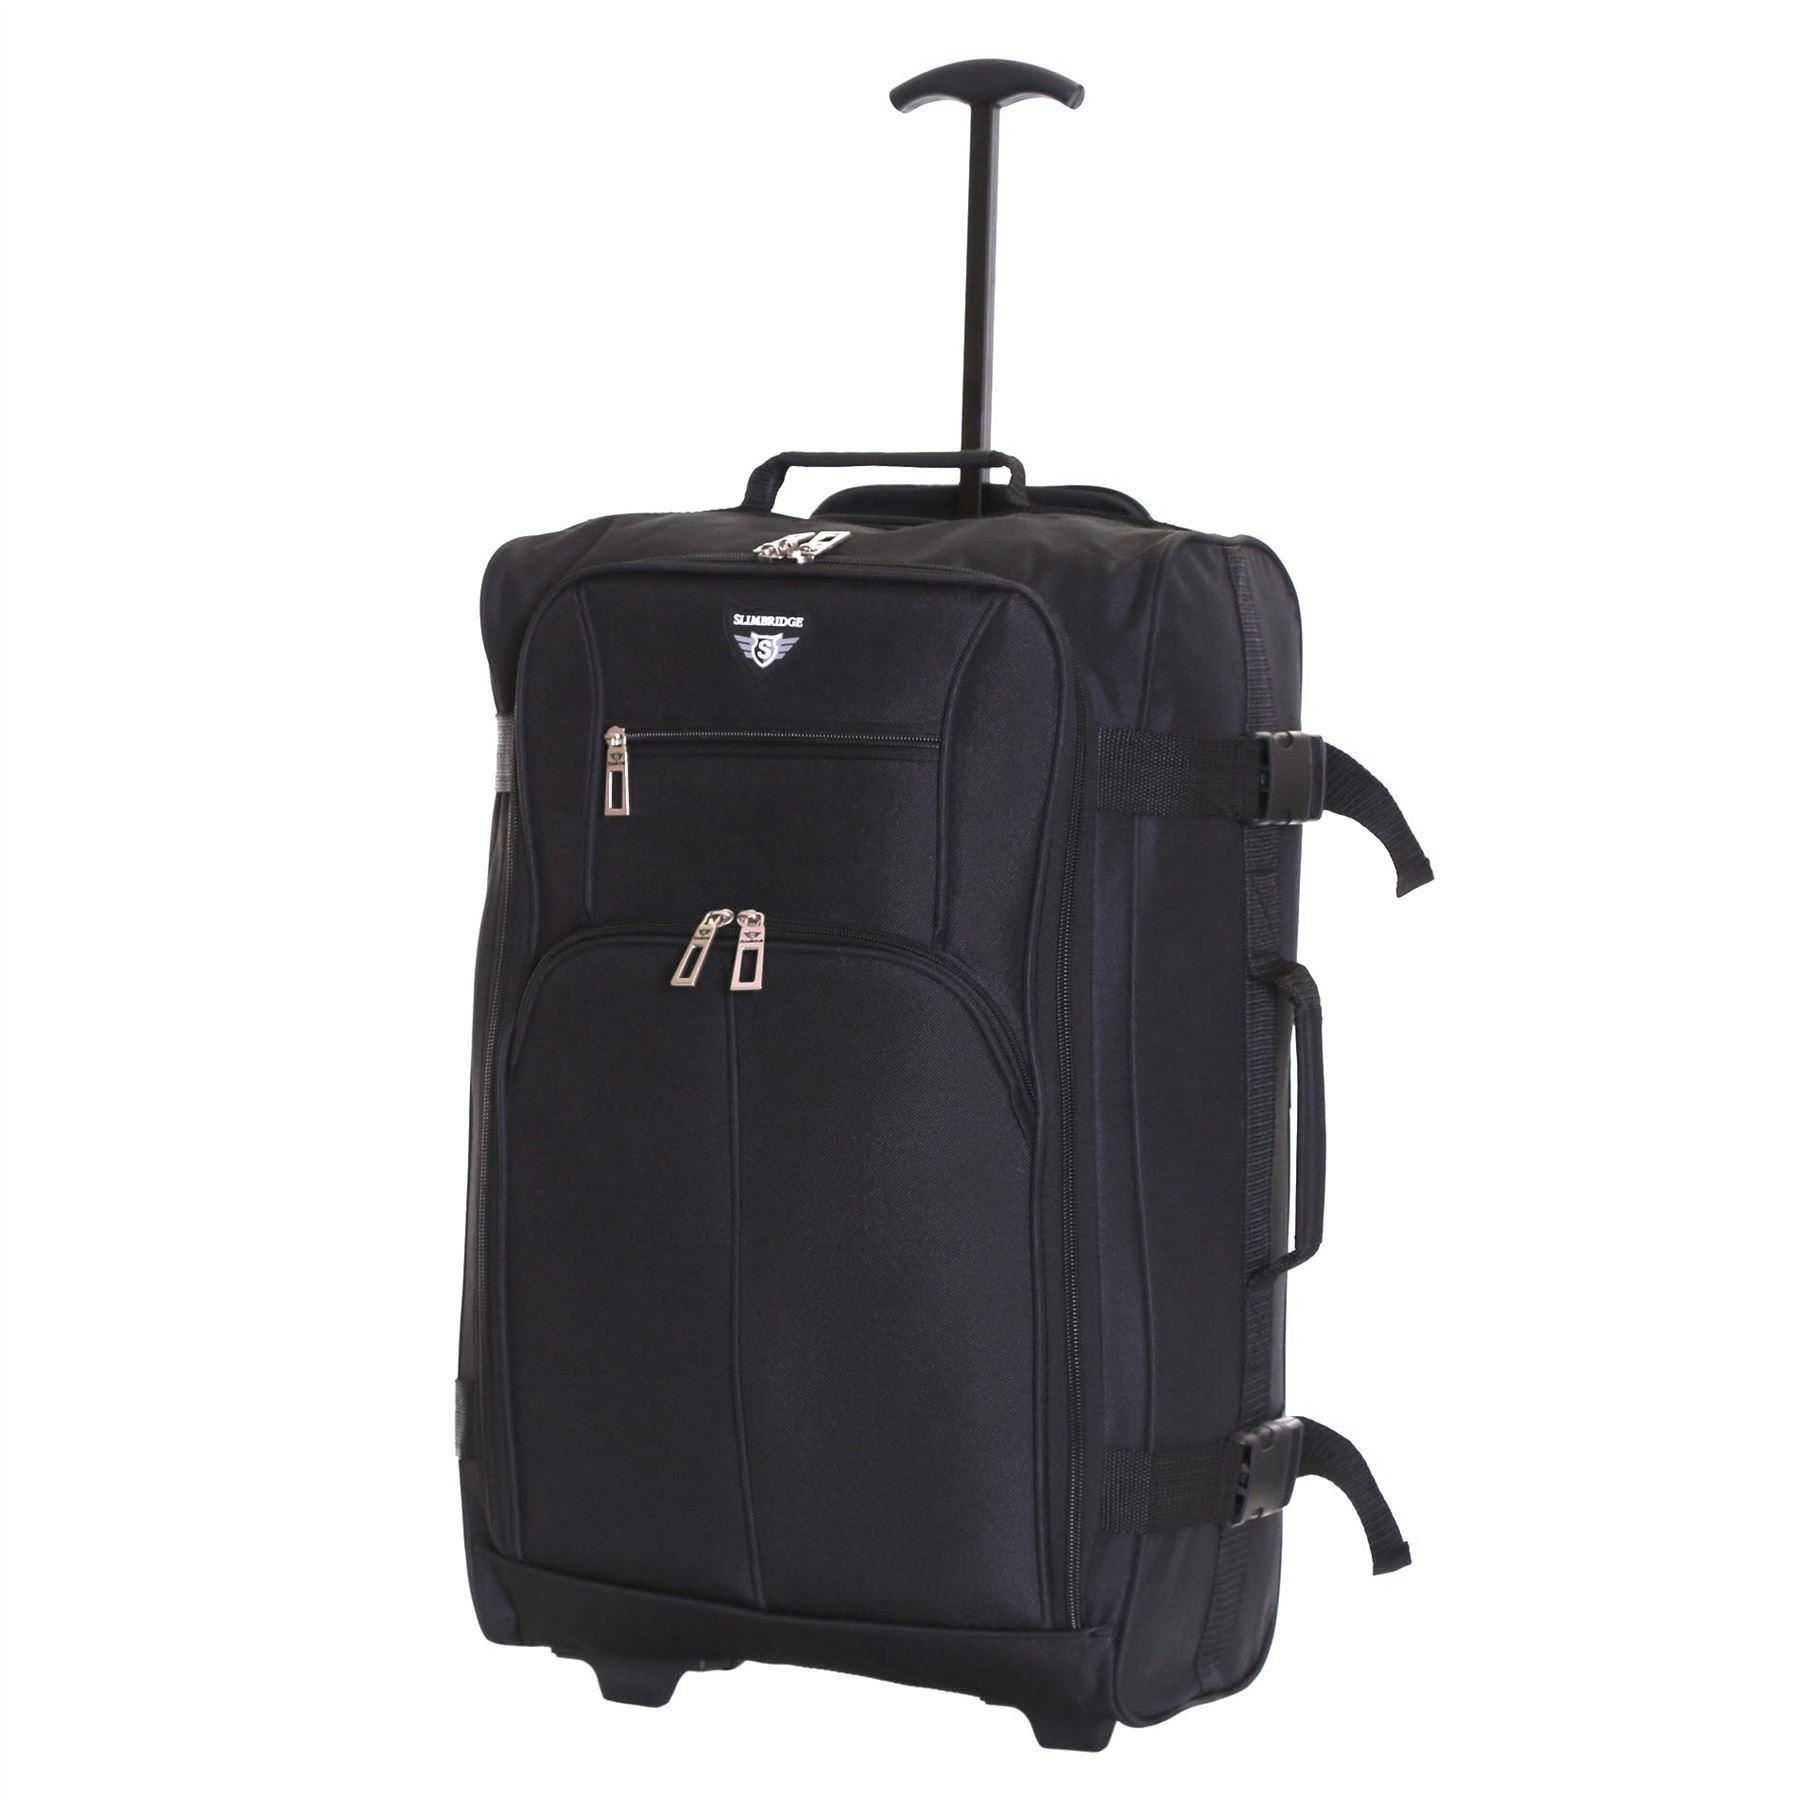 Ryanair-Easyjet-Set-of-2-Cabin-Approved-Hand-Trolley-Suitcases-Luggage-Case-Bags thumbnail 14